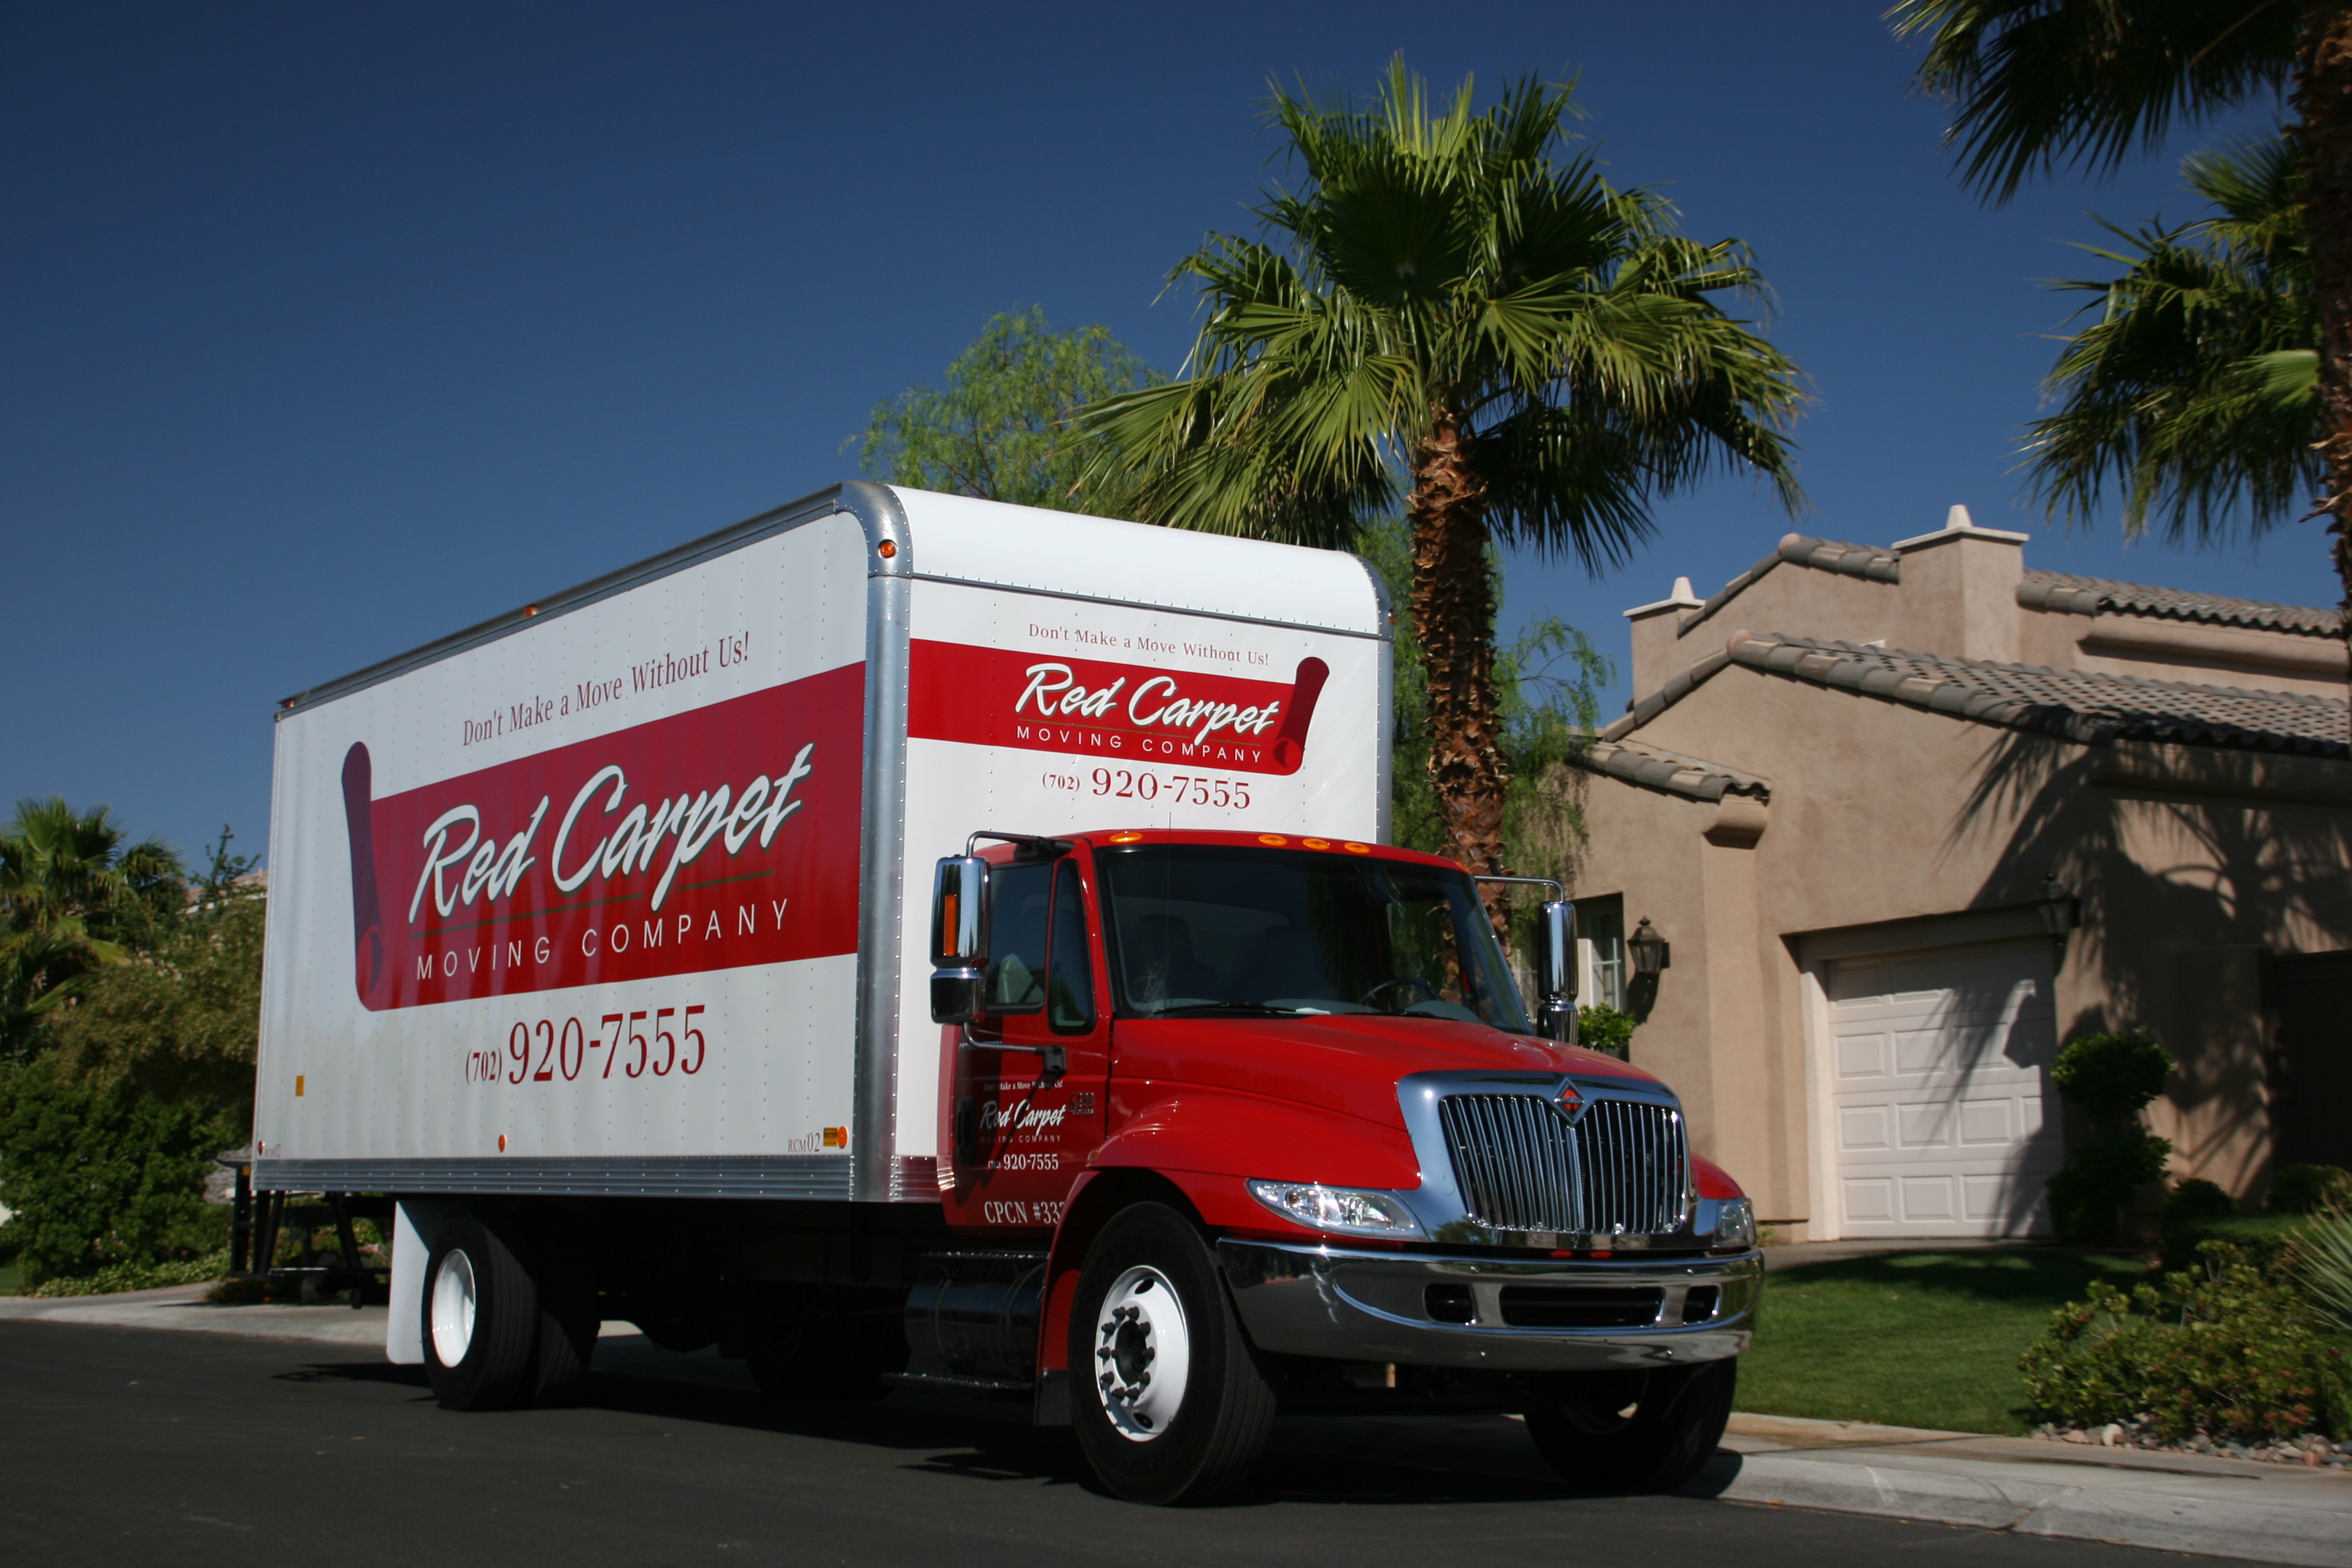 Red Carpet Moving Company  Las Vegas, Nv  Company Profile. Tallahassee Florida Community College. Augmented Reality In Construction. Connecticut Bankruptcy Lawyer. Credit Card 3000 Limit Small Business Account. The Travel Corporation Risperdal Class Action. Saving Bond Interest Rates Movers In Richmond. Free Network Monitoring Tool. Drug Abuse Rehab Centers Kansas City Security